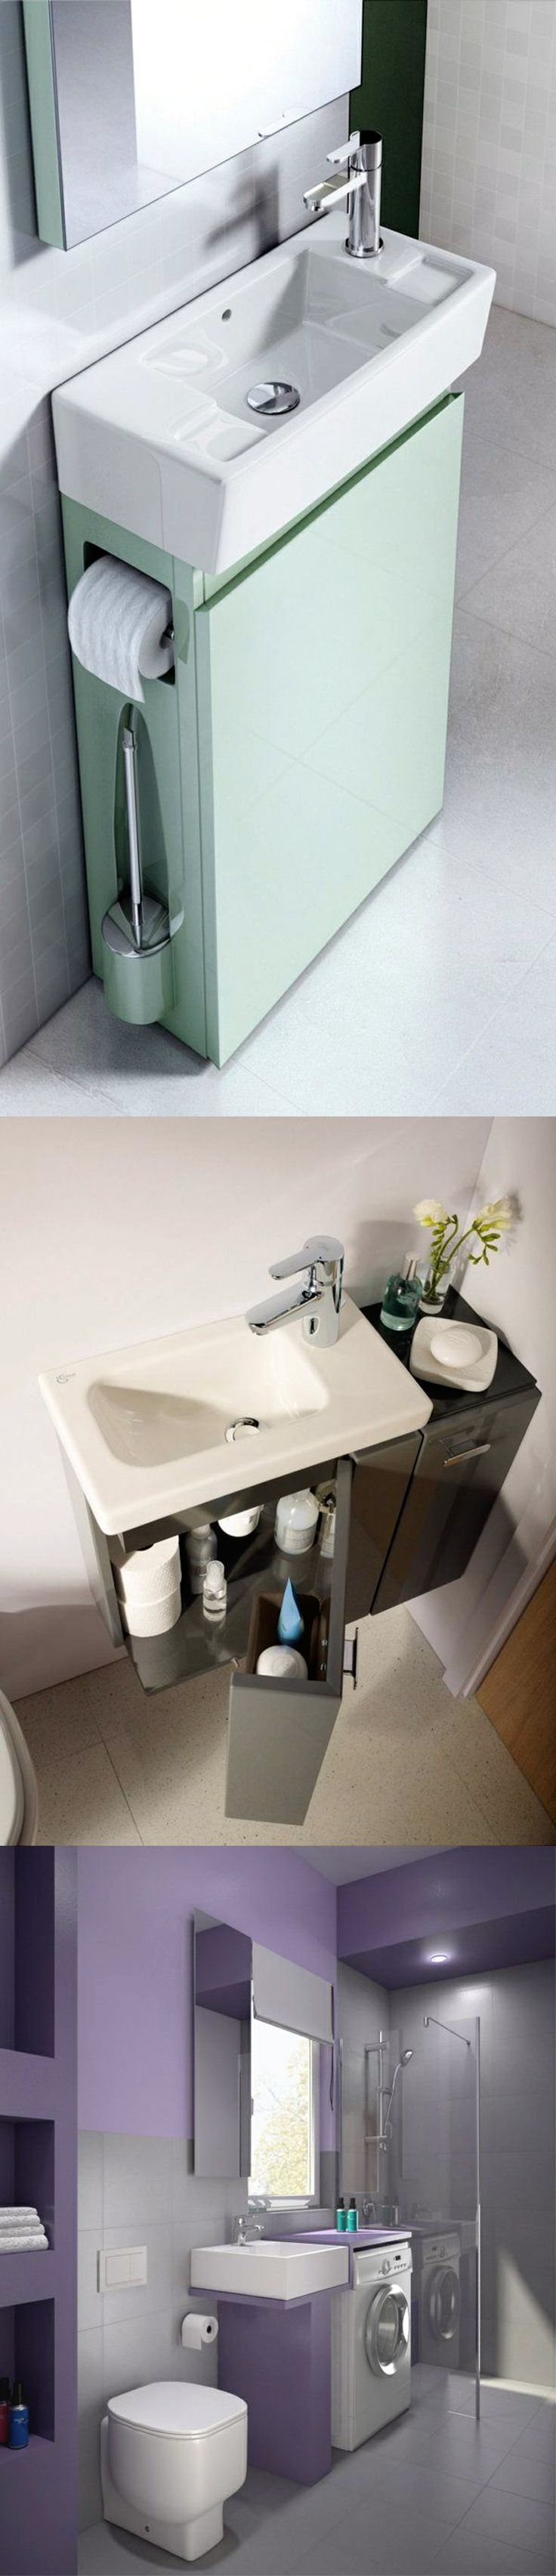 17 best ideas about moderne badmöbel on pinterest | moderne dusche, Hause ideen